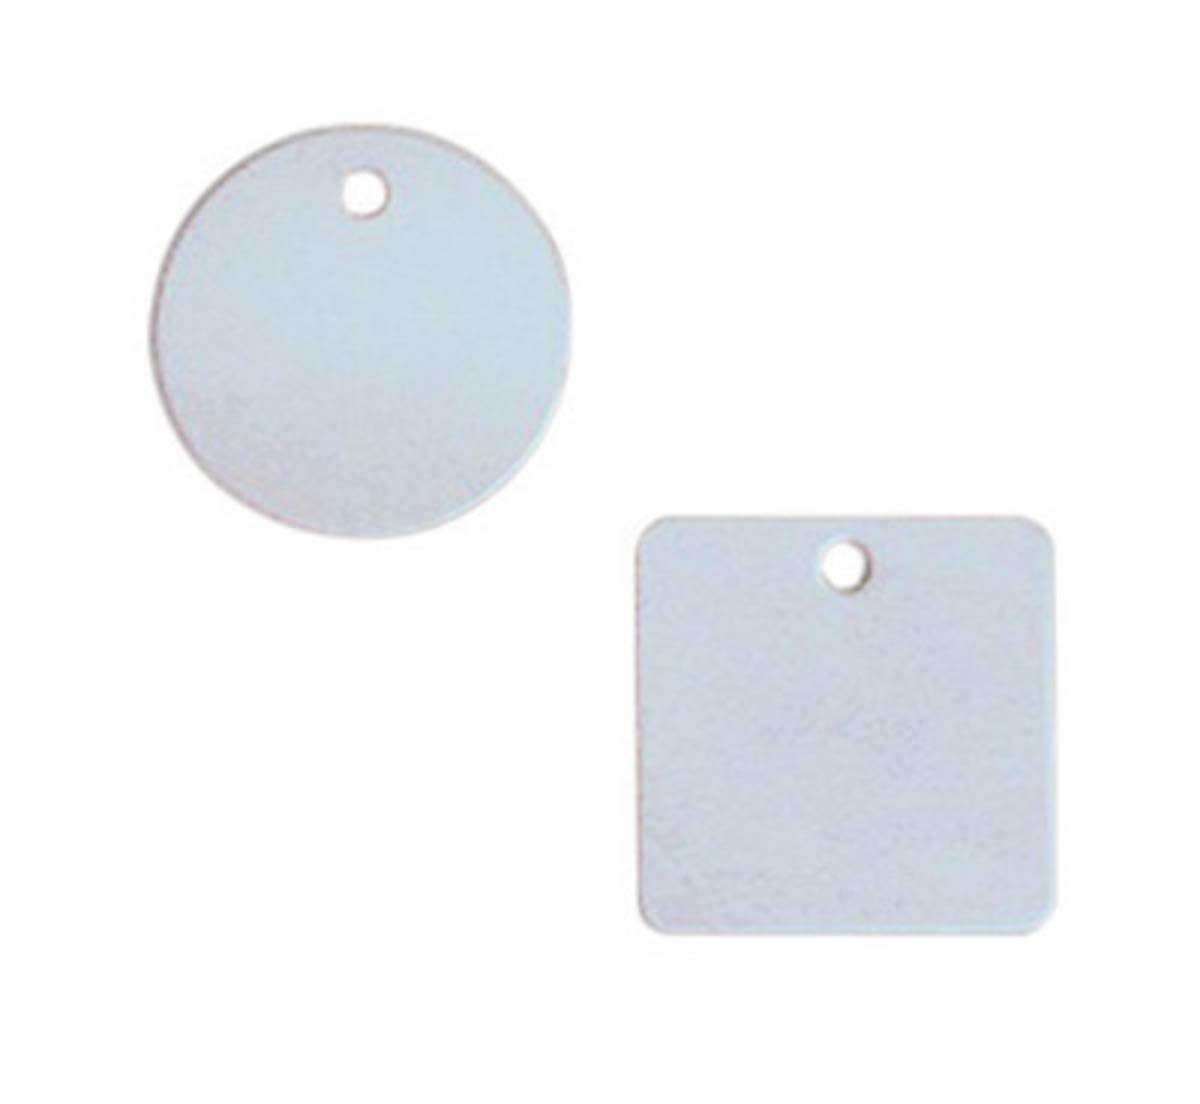 Accuform Signs 2'' White And Gray 18 Gauge Aluminum Circle Blank Tag With 3/16'' Hole (25 Per Pack)